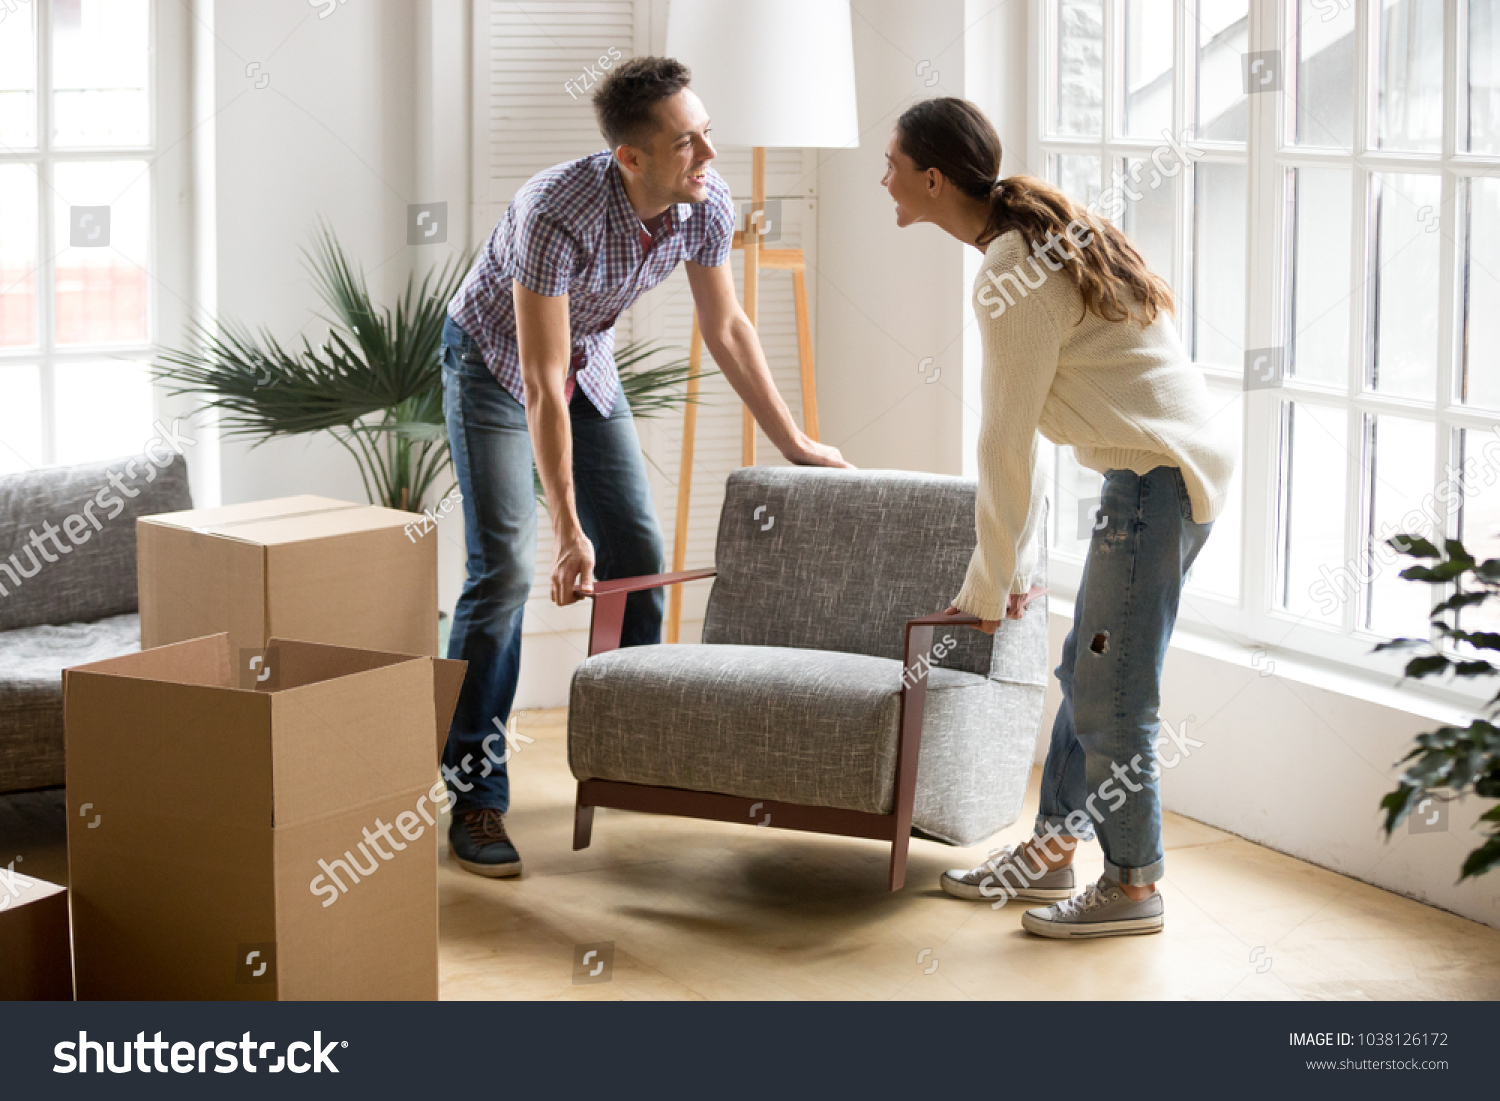 Smiling couple carrying modern chair together placing furniture moving into new home, young family discussing house improvement interior design while furnishing living room, remodeling and renovation #1038126172